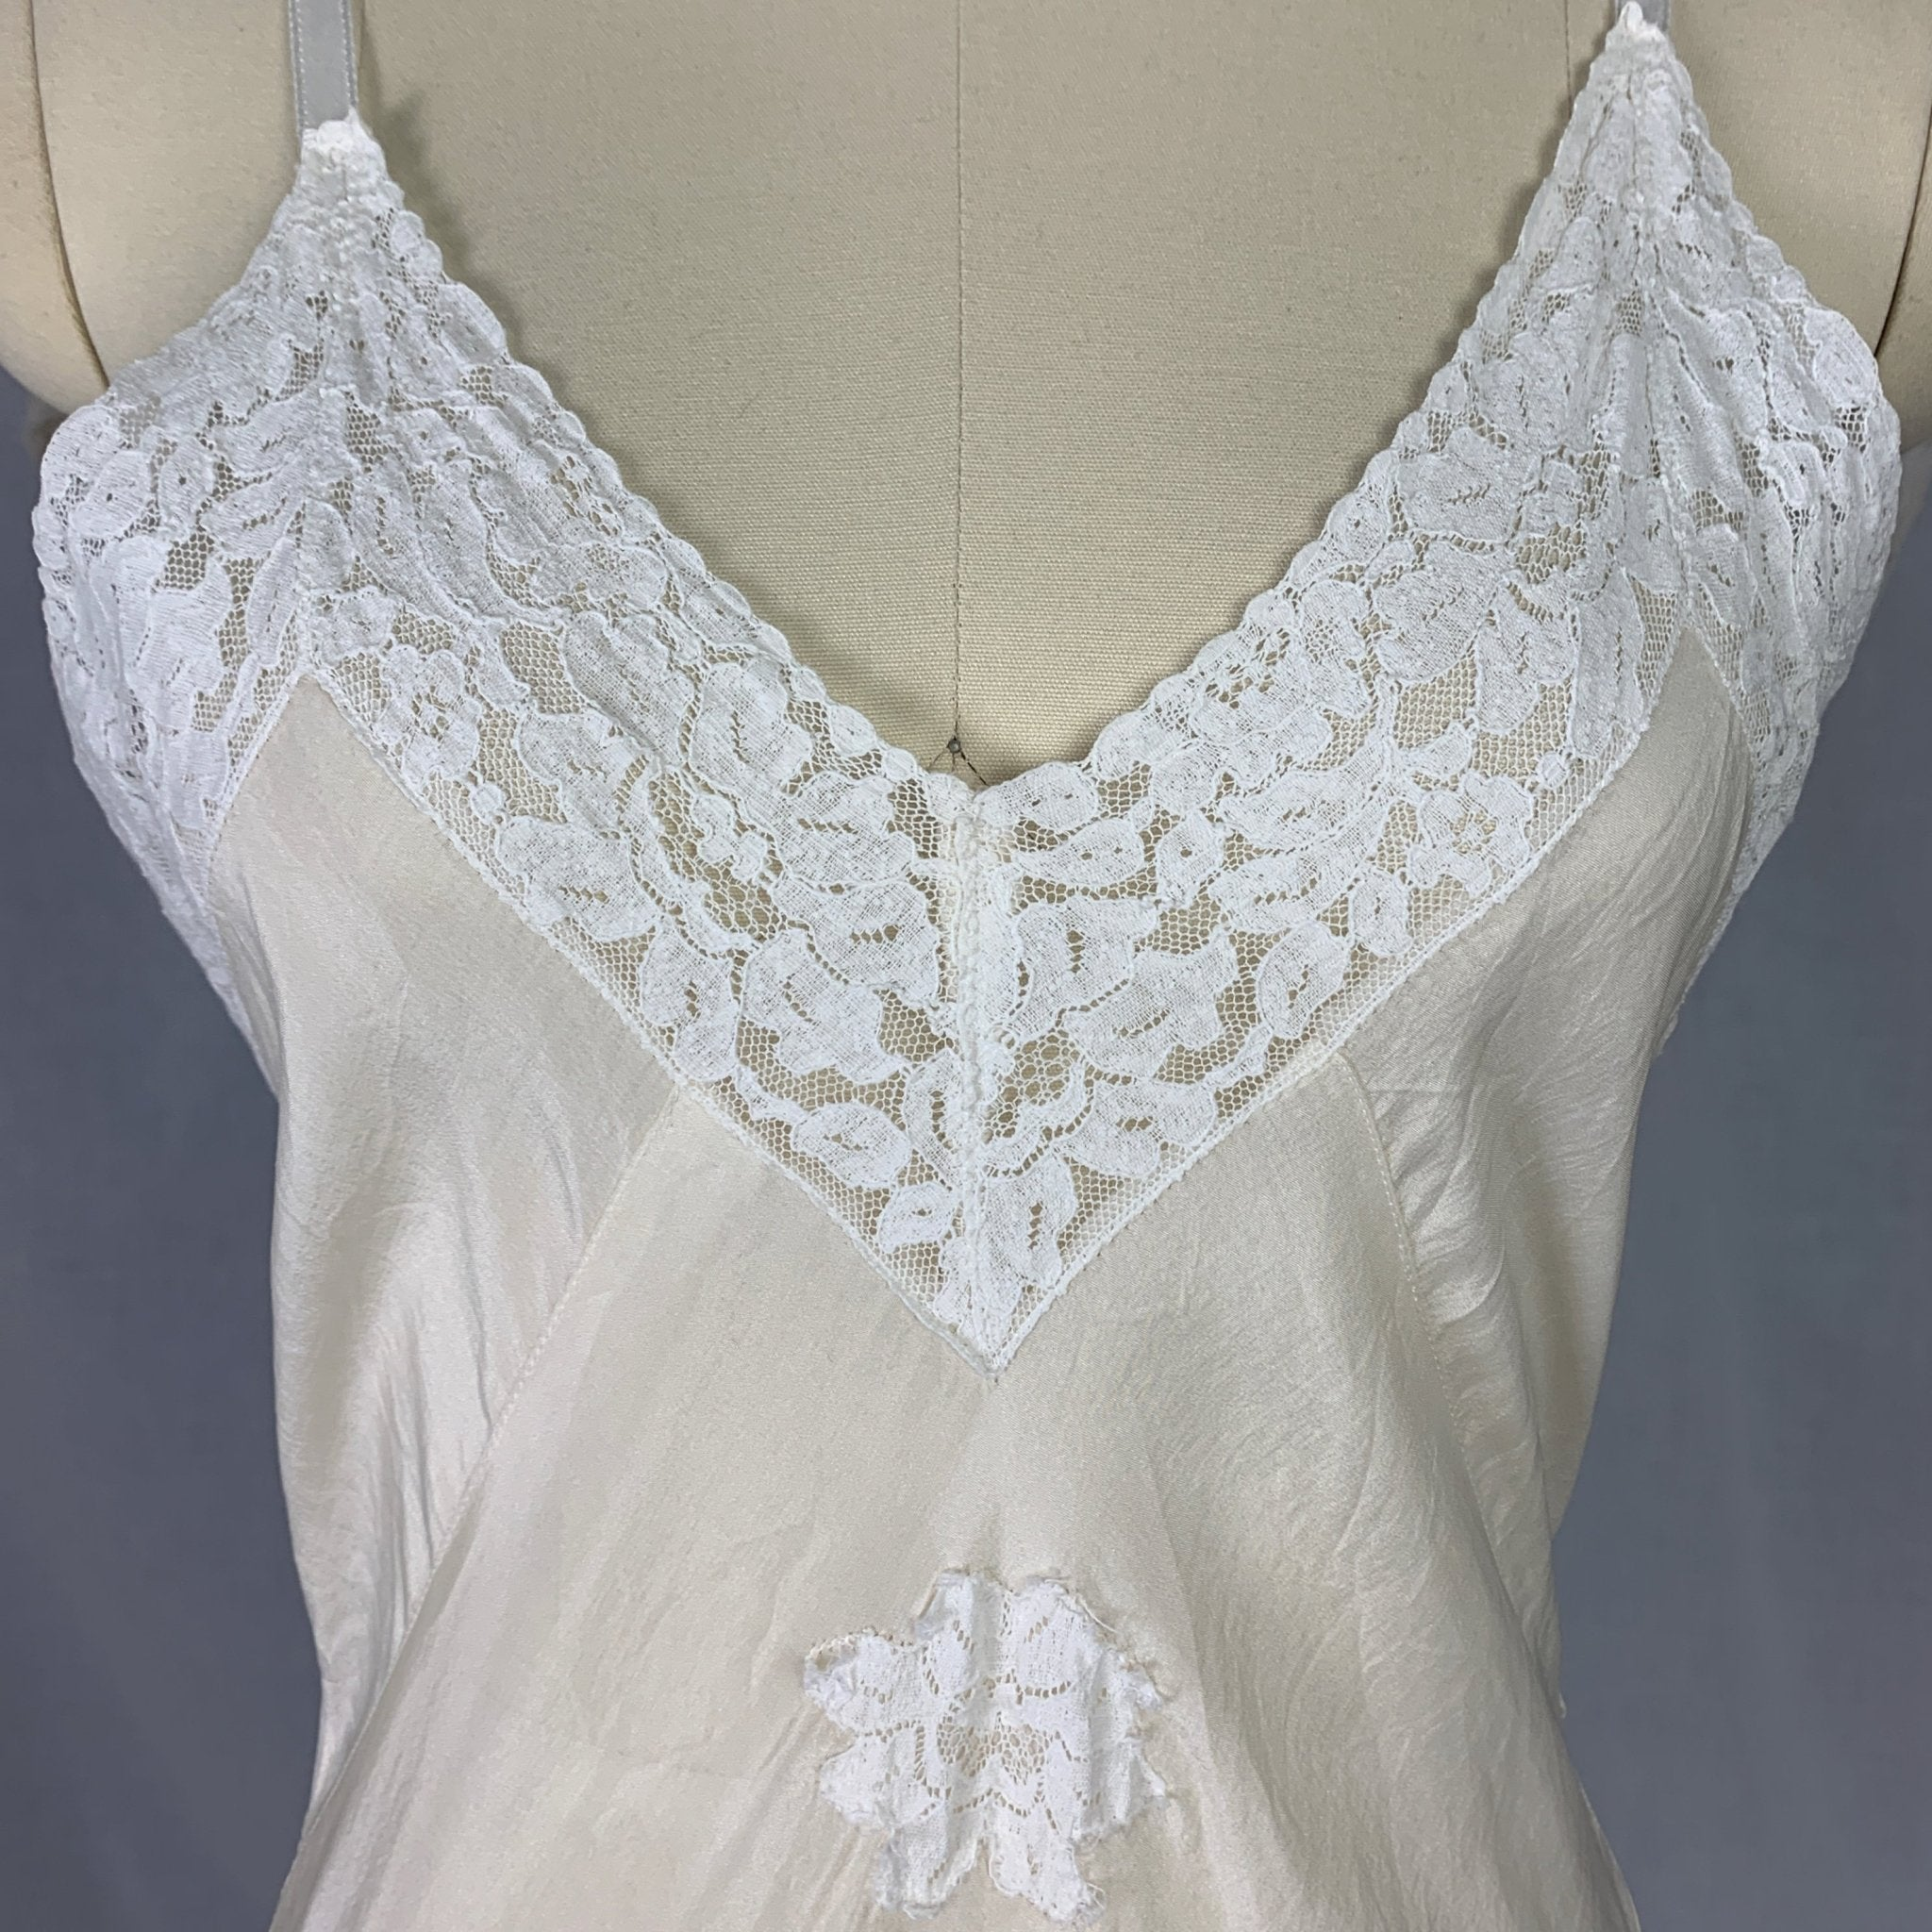 Vintage 1930's Teddy Chemise | Sheer Ivory Silk with White Floral Lace | Size SM - Daggers & Dames